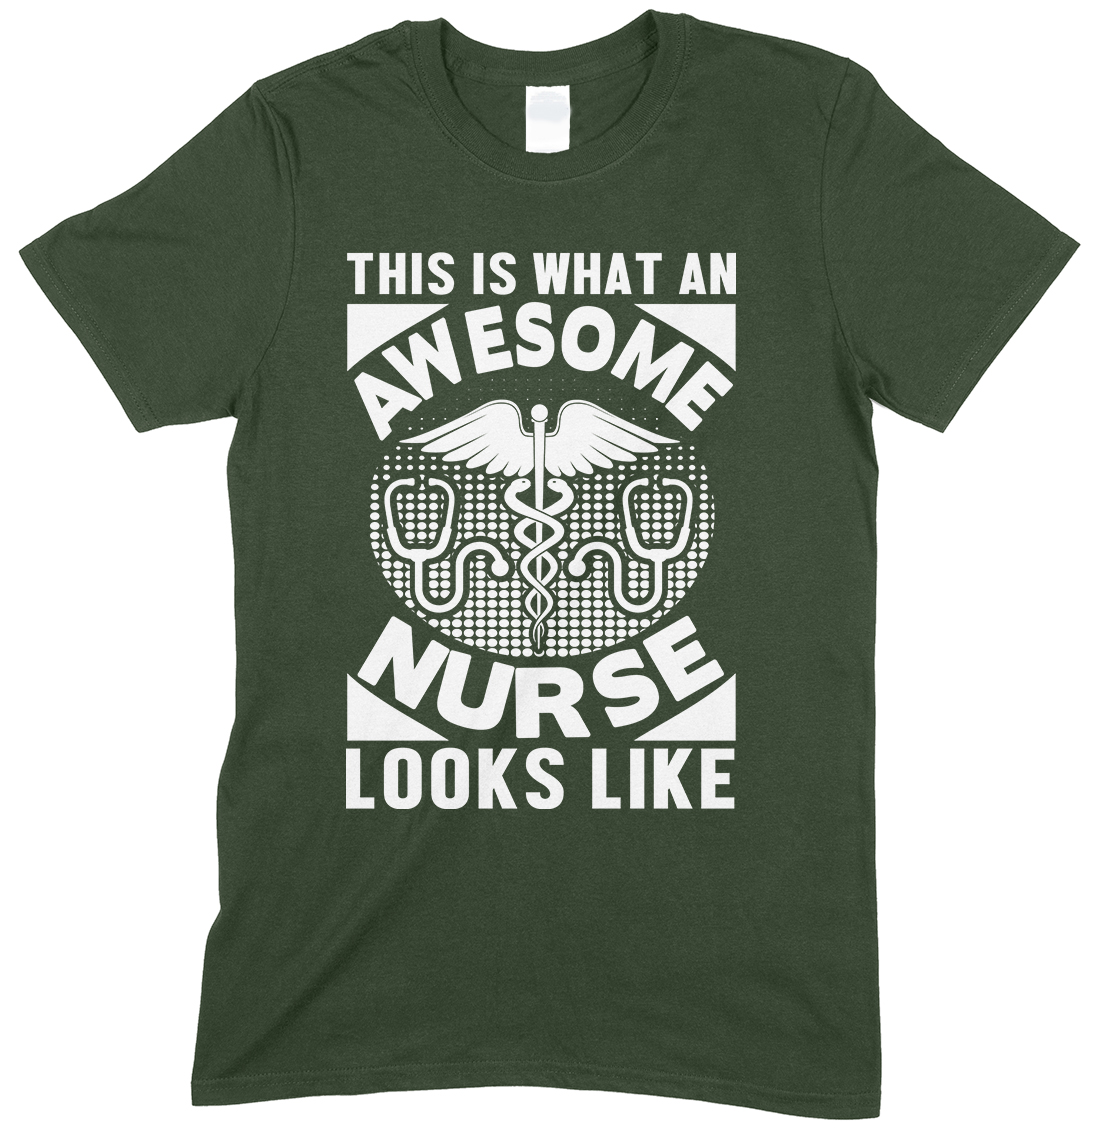 This is What an Awesome Nurse Looks Like -Unisex T Shirt